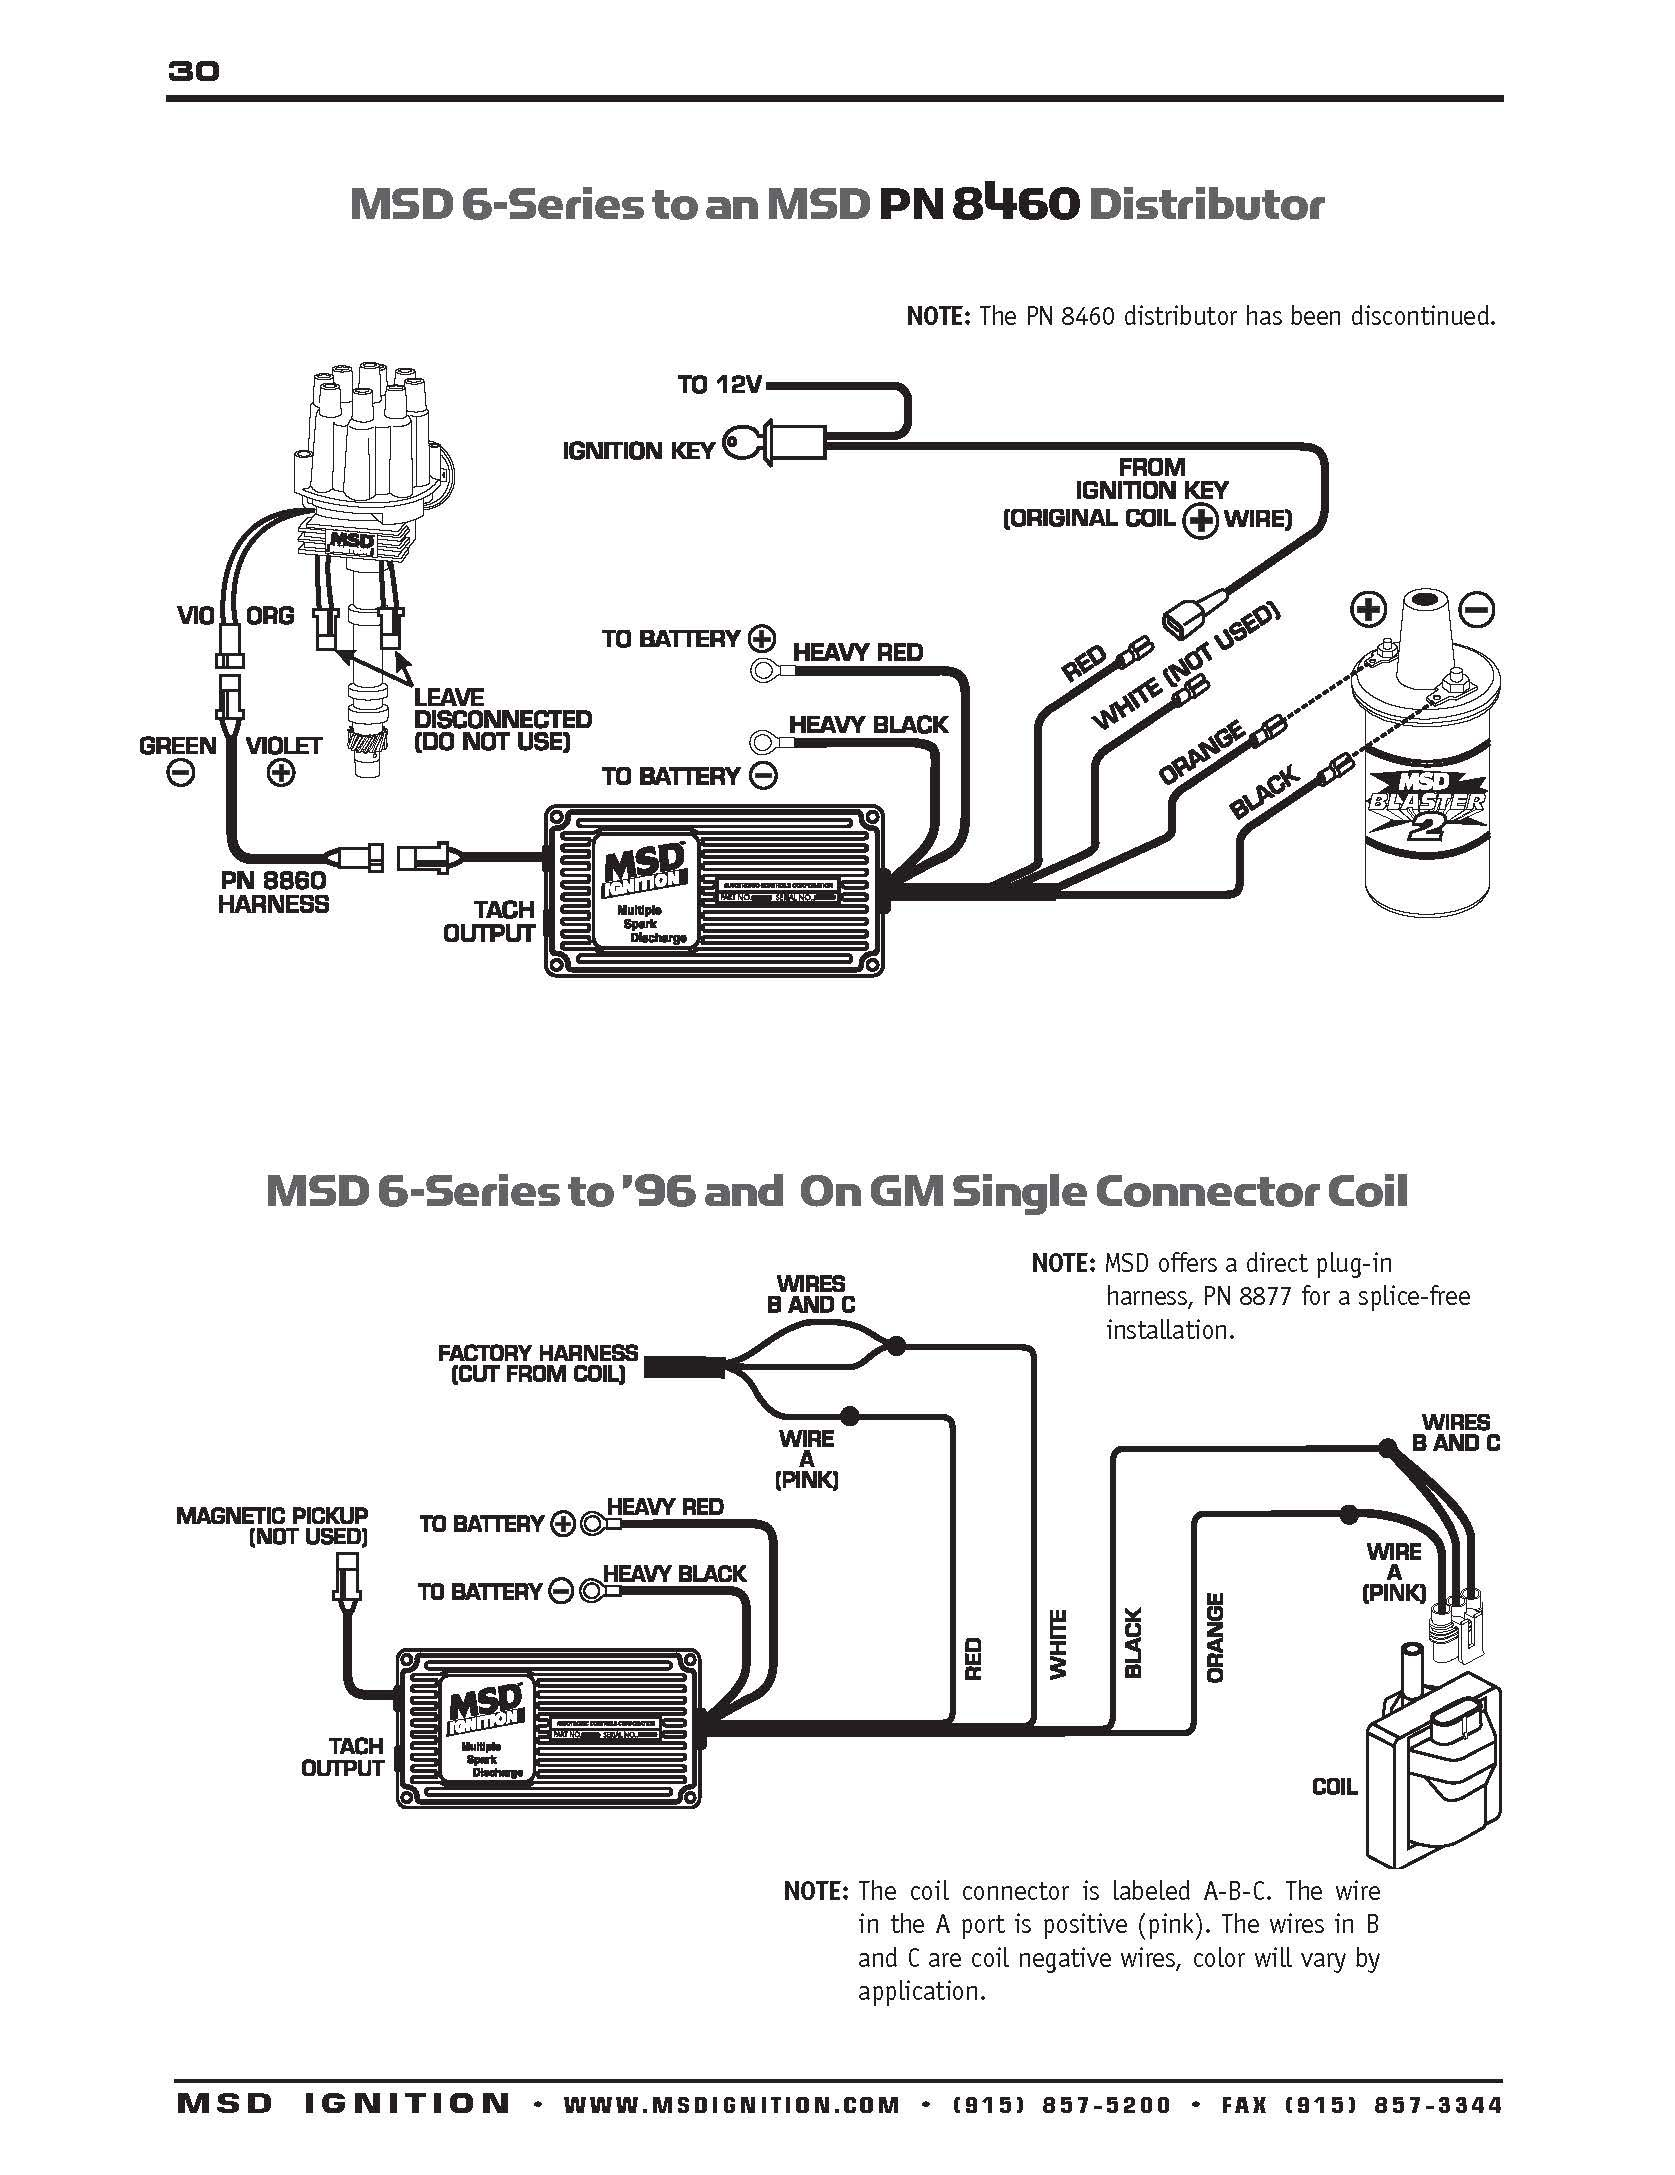 Msd Ignition Wiring Diagrams In Msd Distributor Diagram On Msd Distributor Wiring Diagram Diagram Msd Electrical Diagram